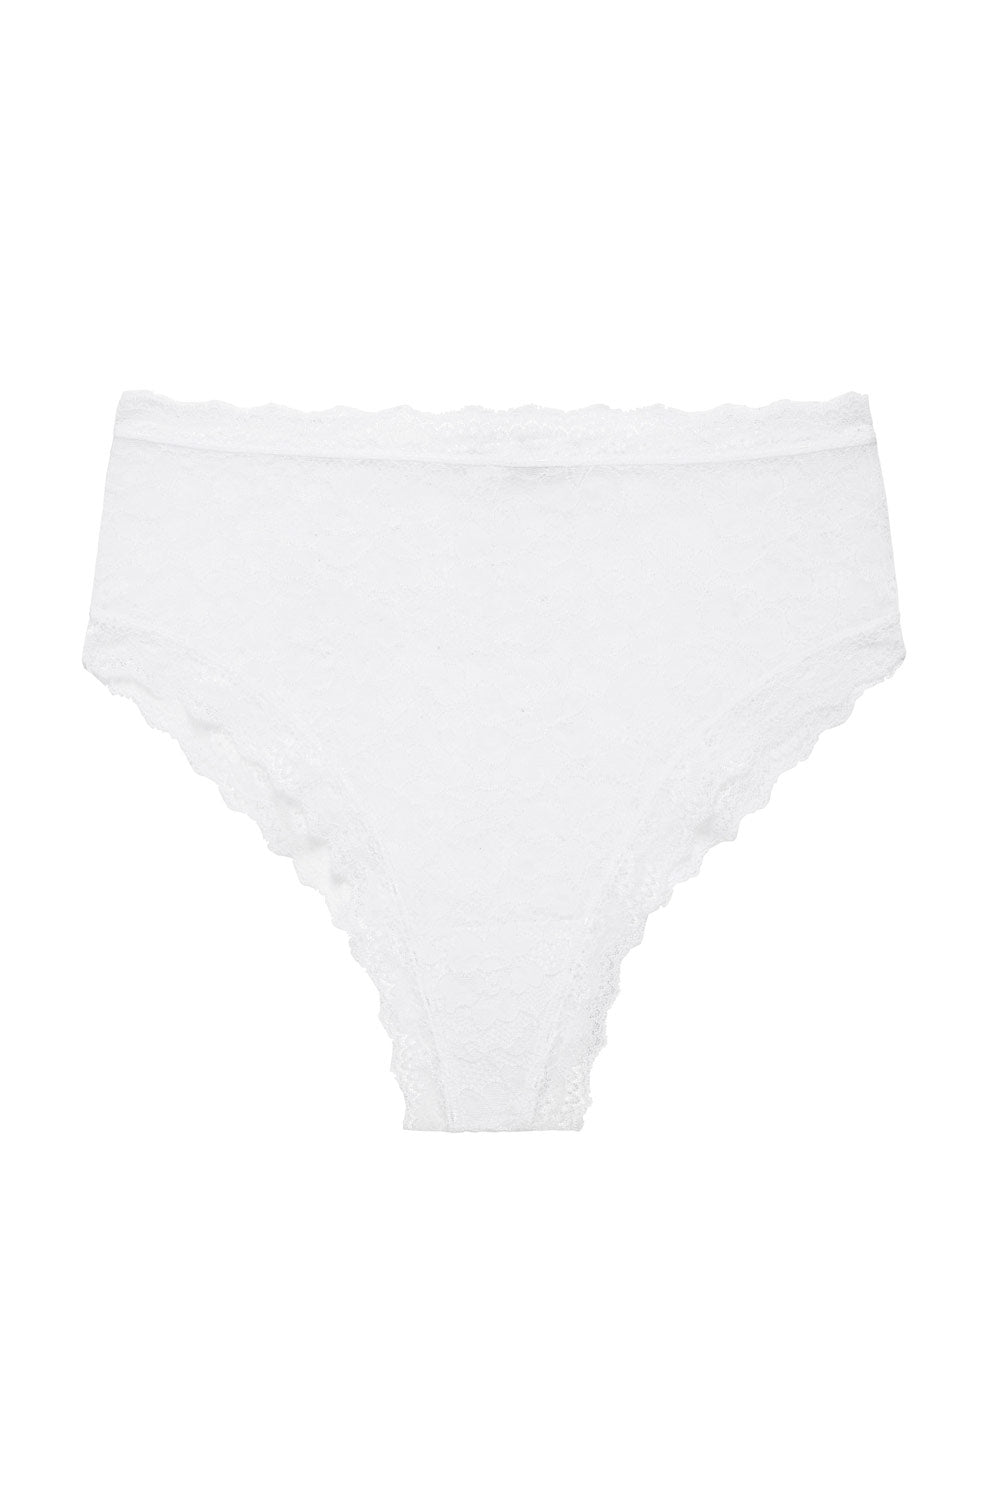 Faith Hi Waist Knickers in White